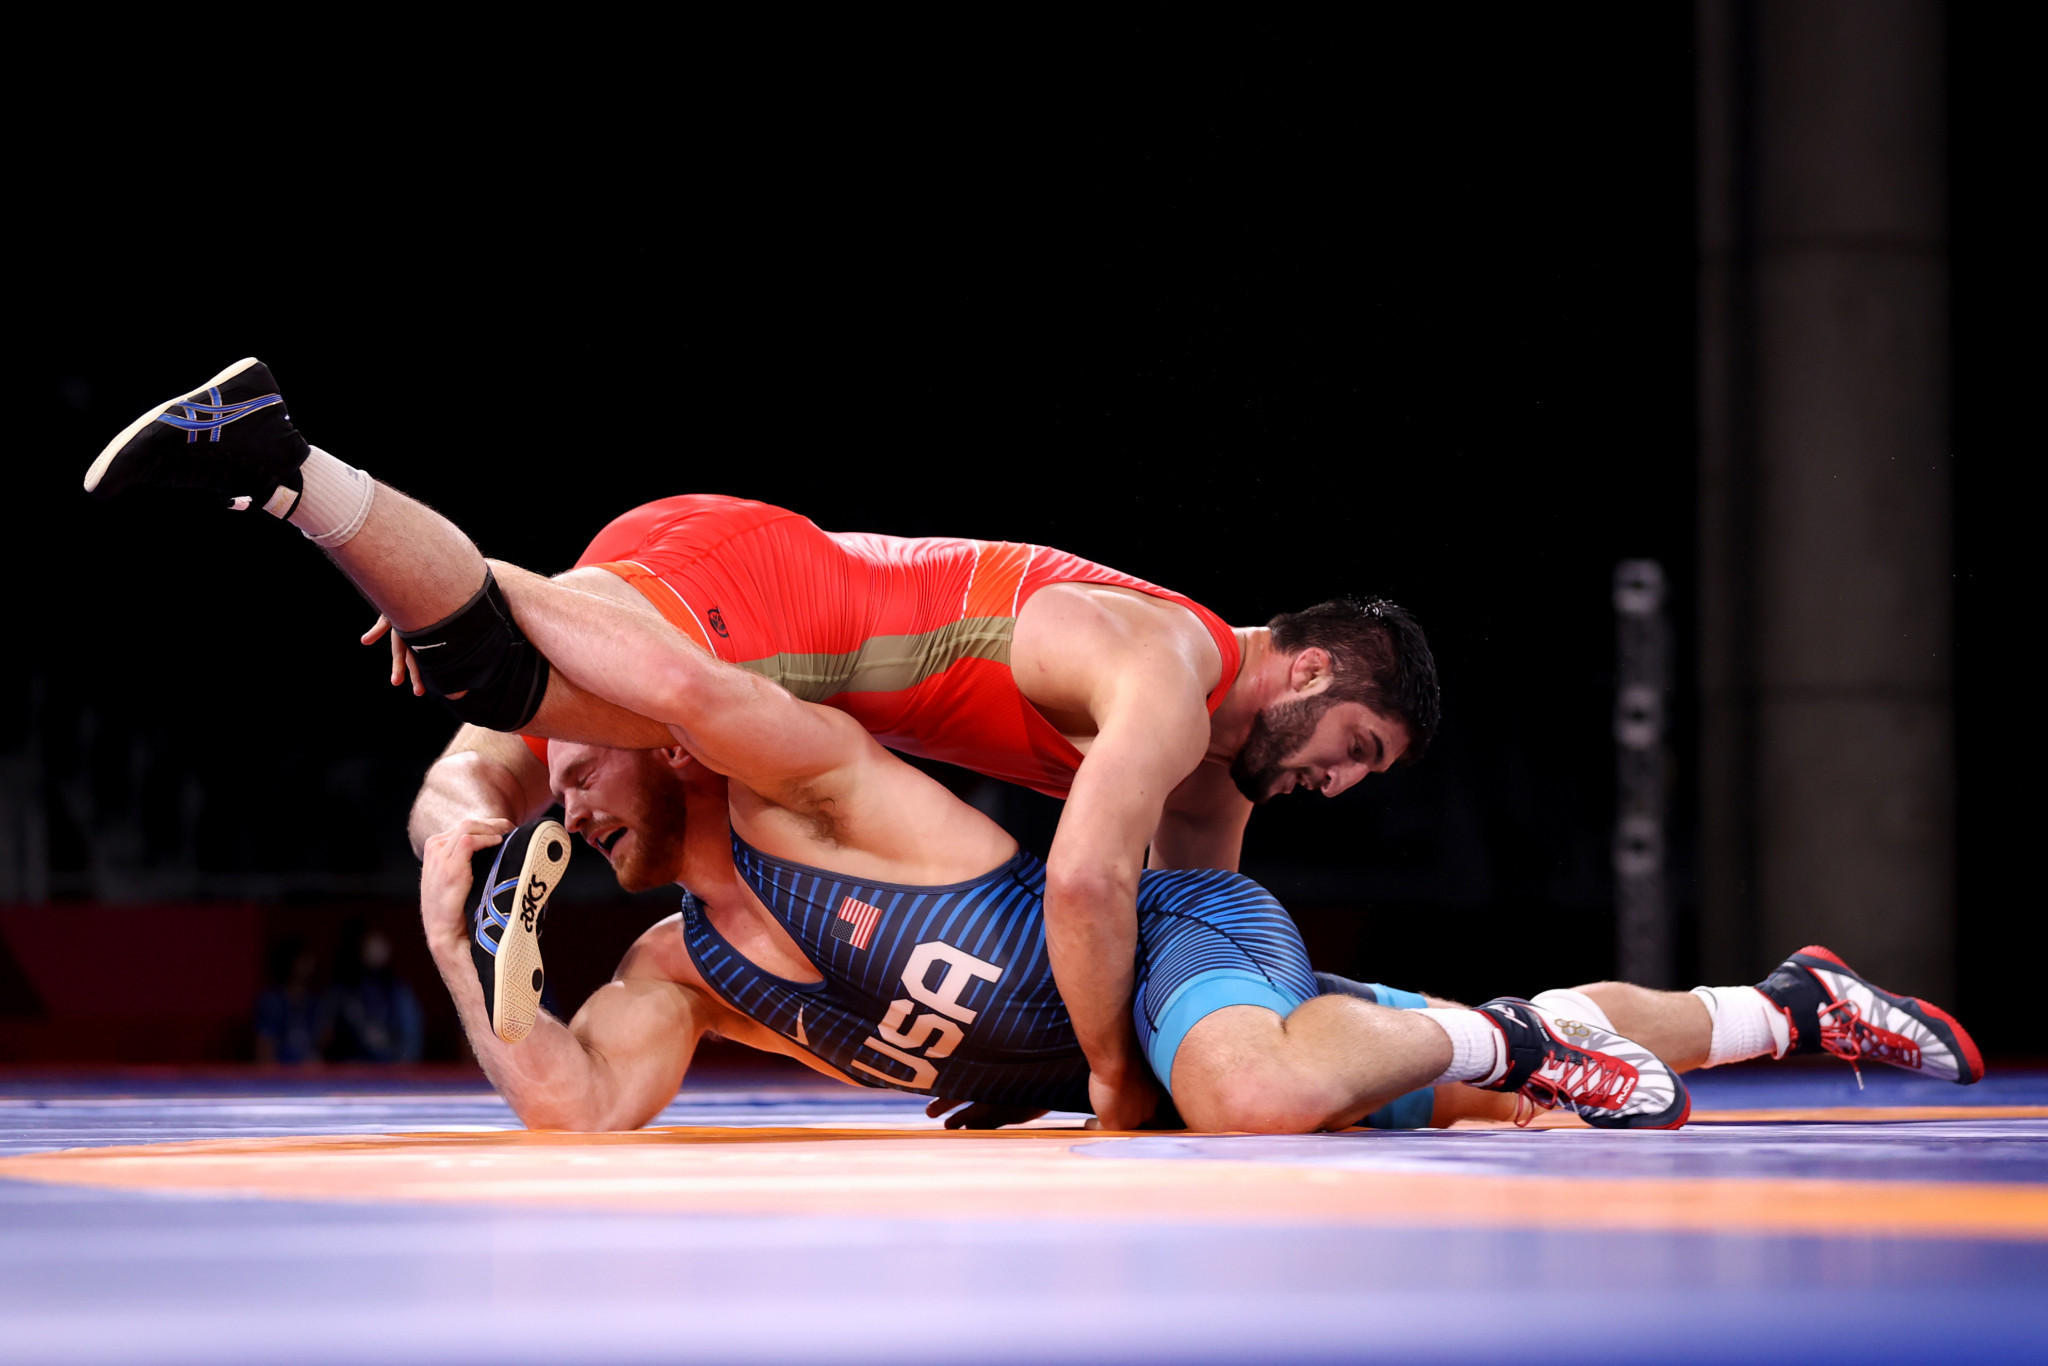 United World Wrestling expects $11 million profit in 2021 ending run of annual losses